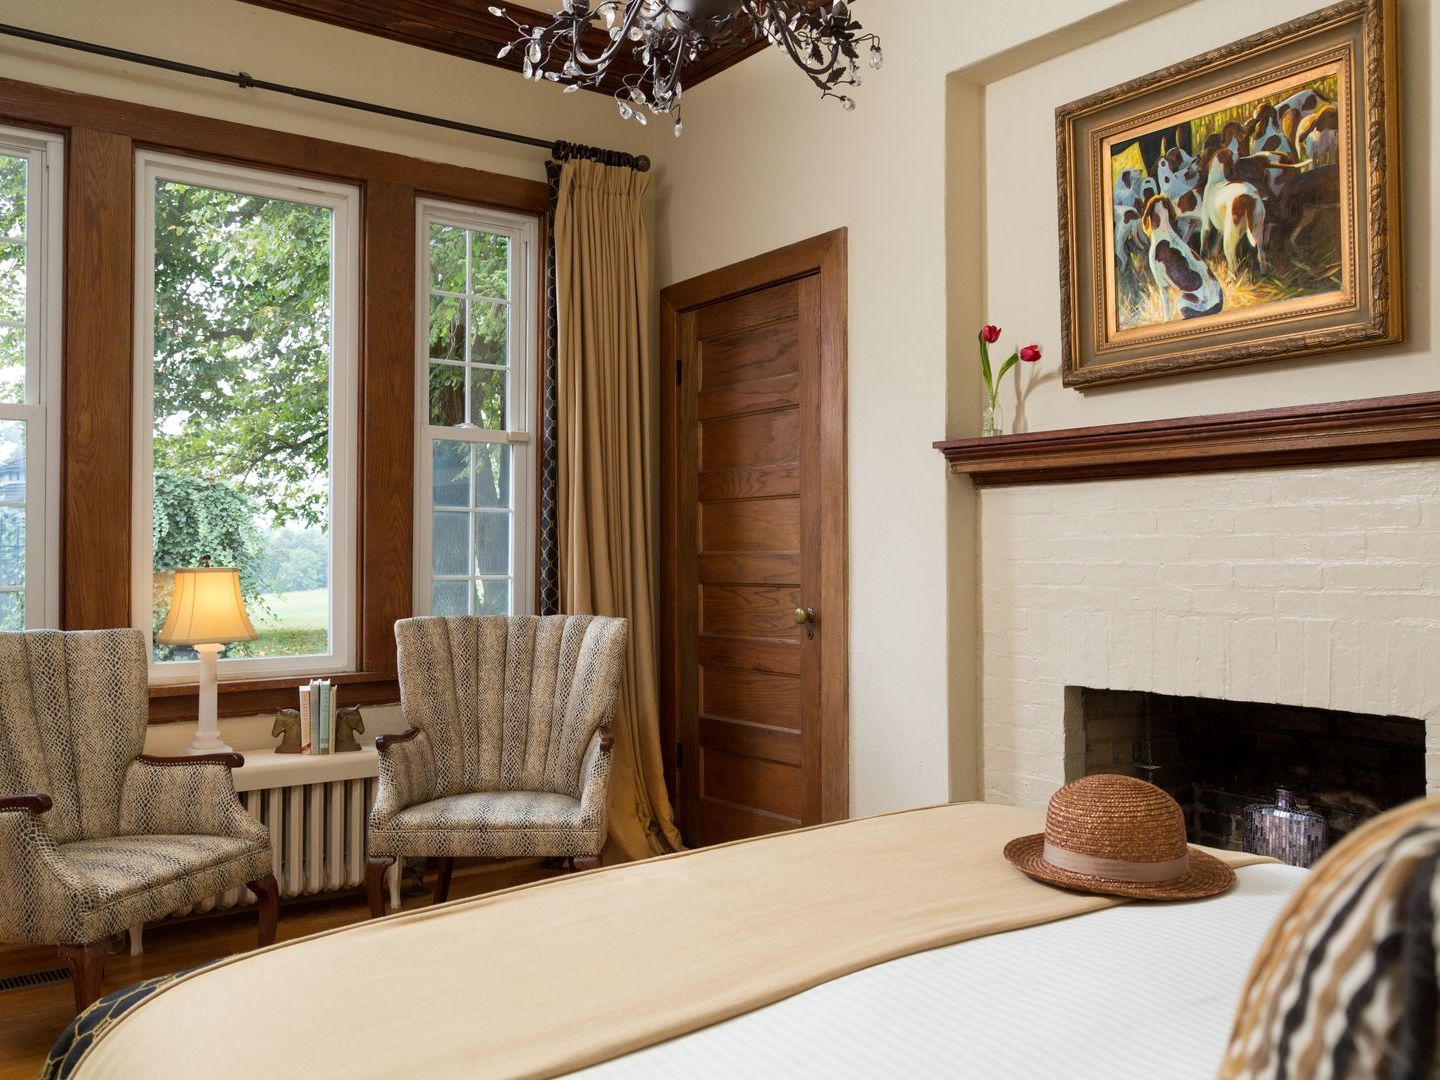 A bedroom with a fireplace and a large window at Glen Gordon Manor .